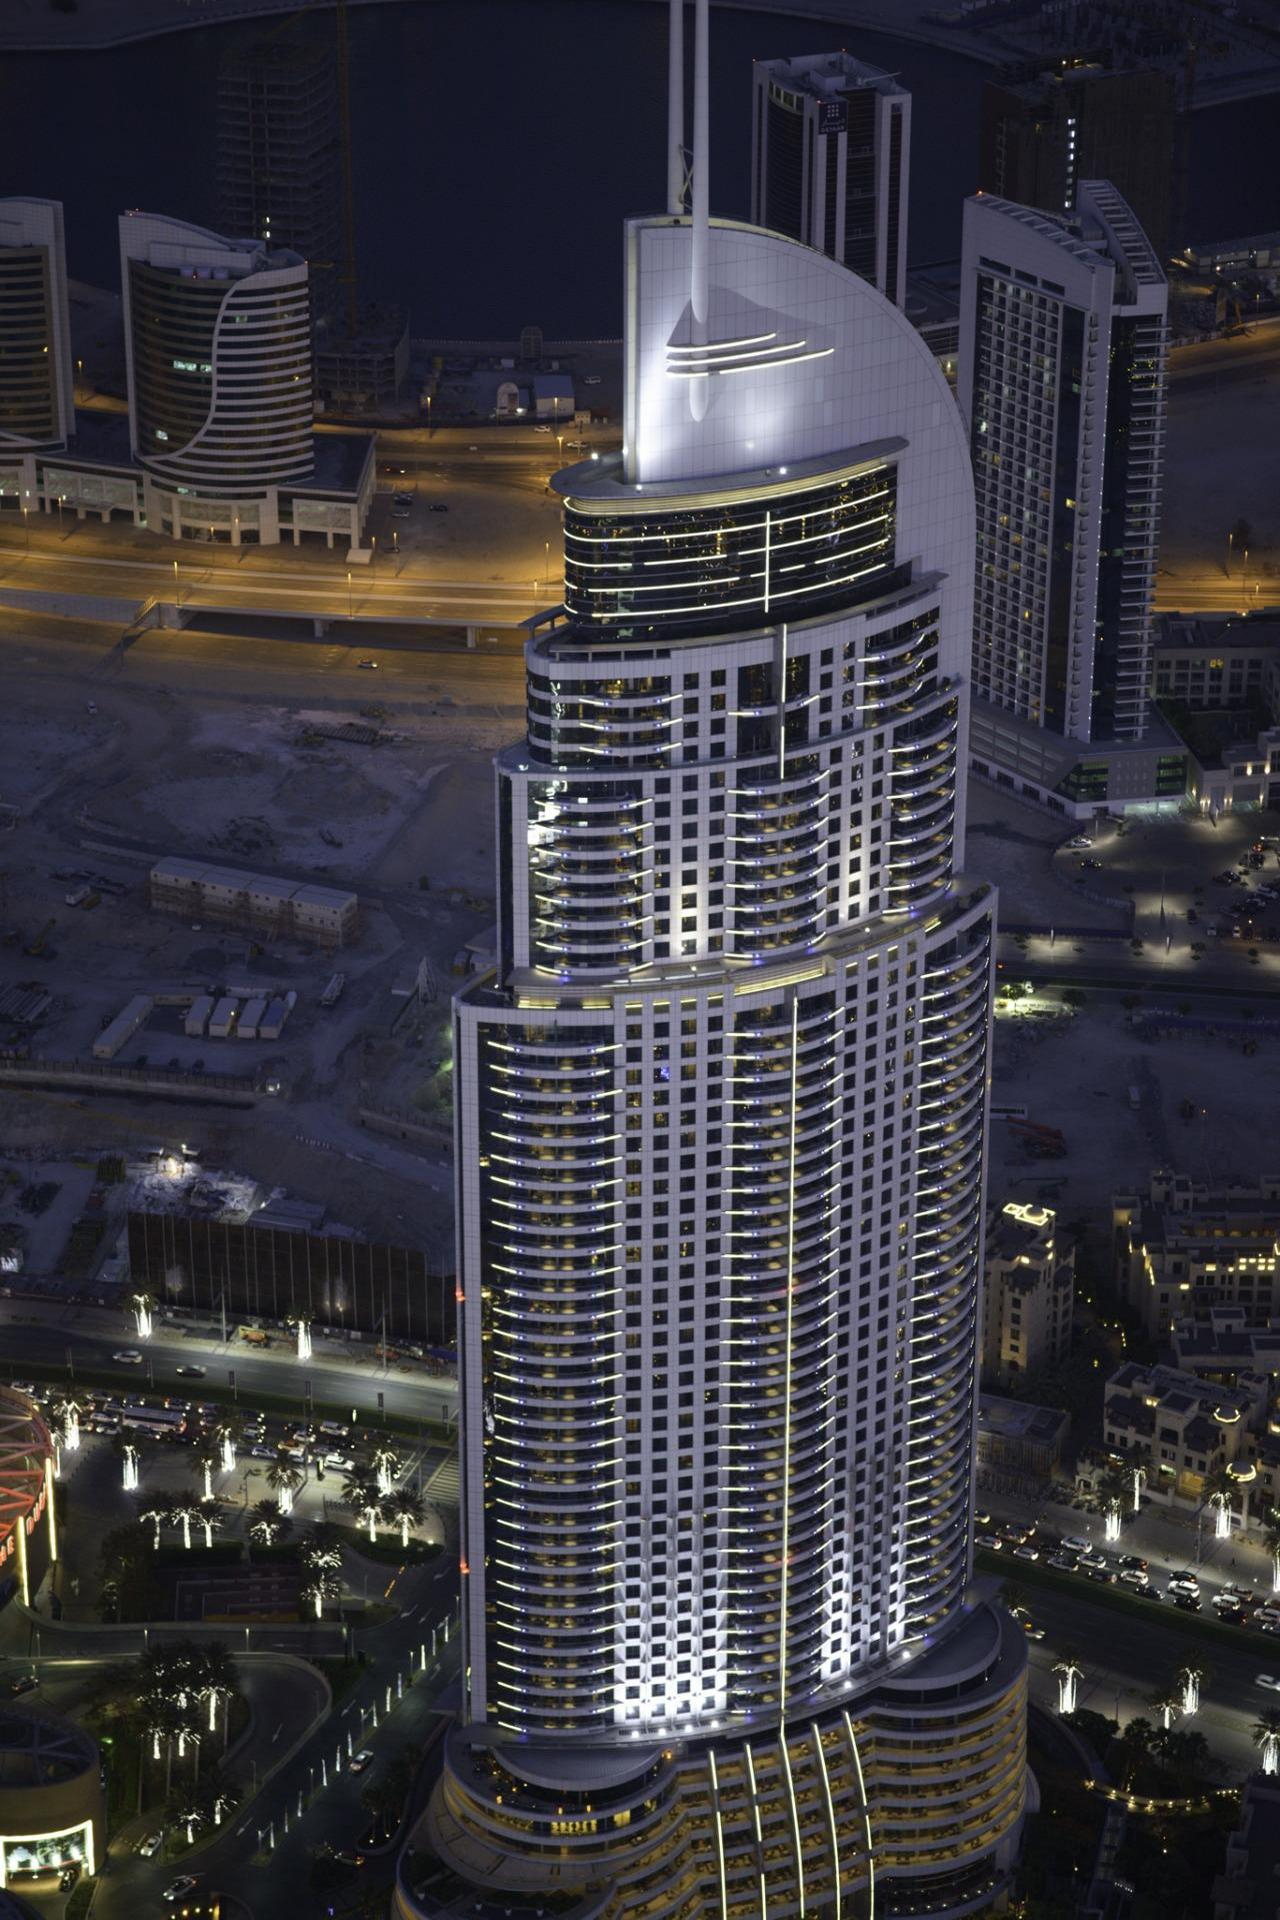 dubai address downtown hotel skyscraper night 1280x1920